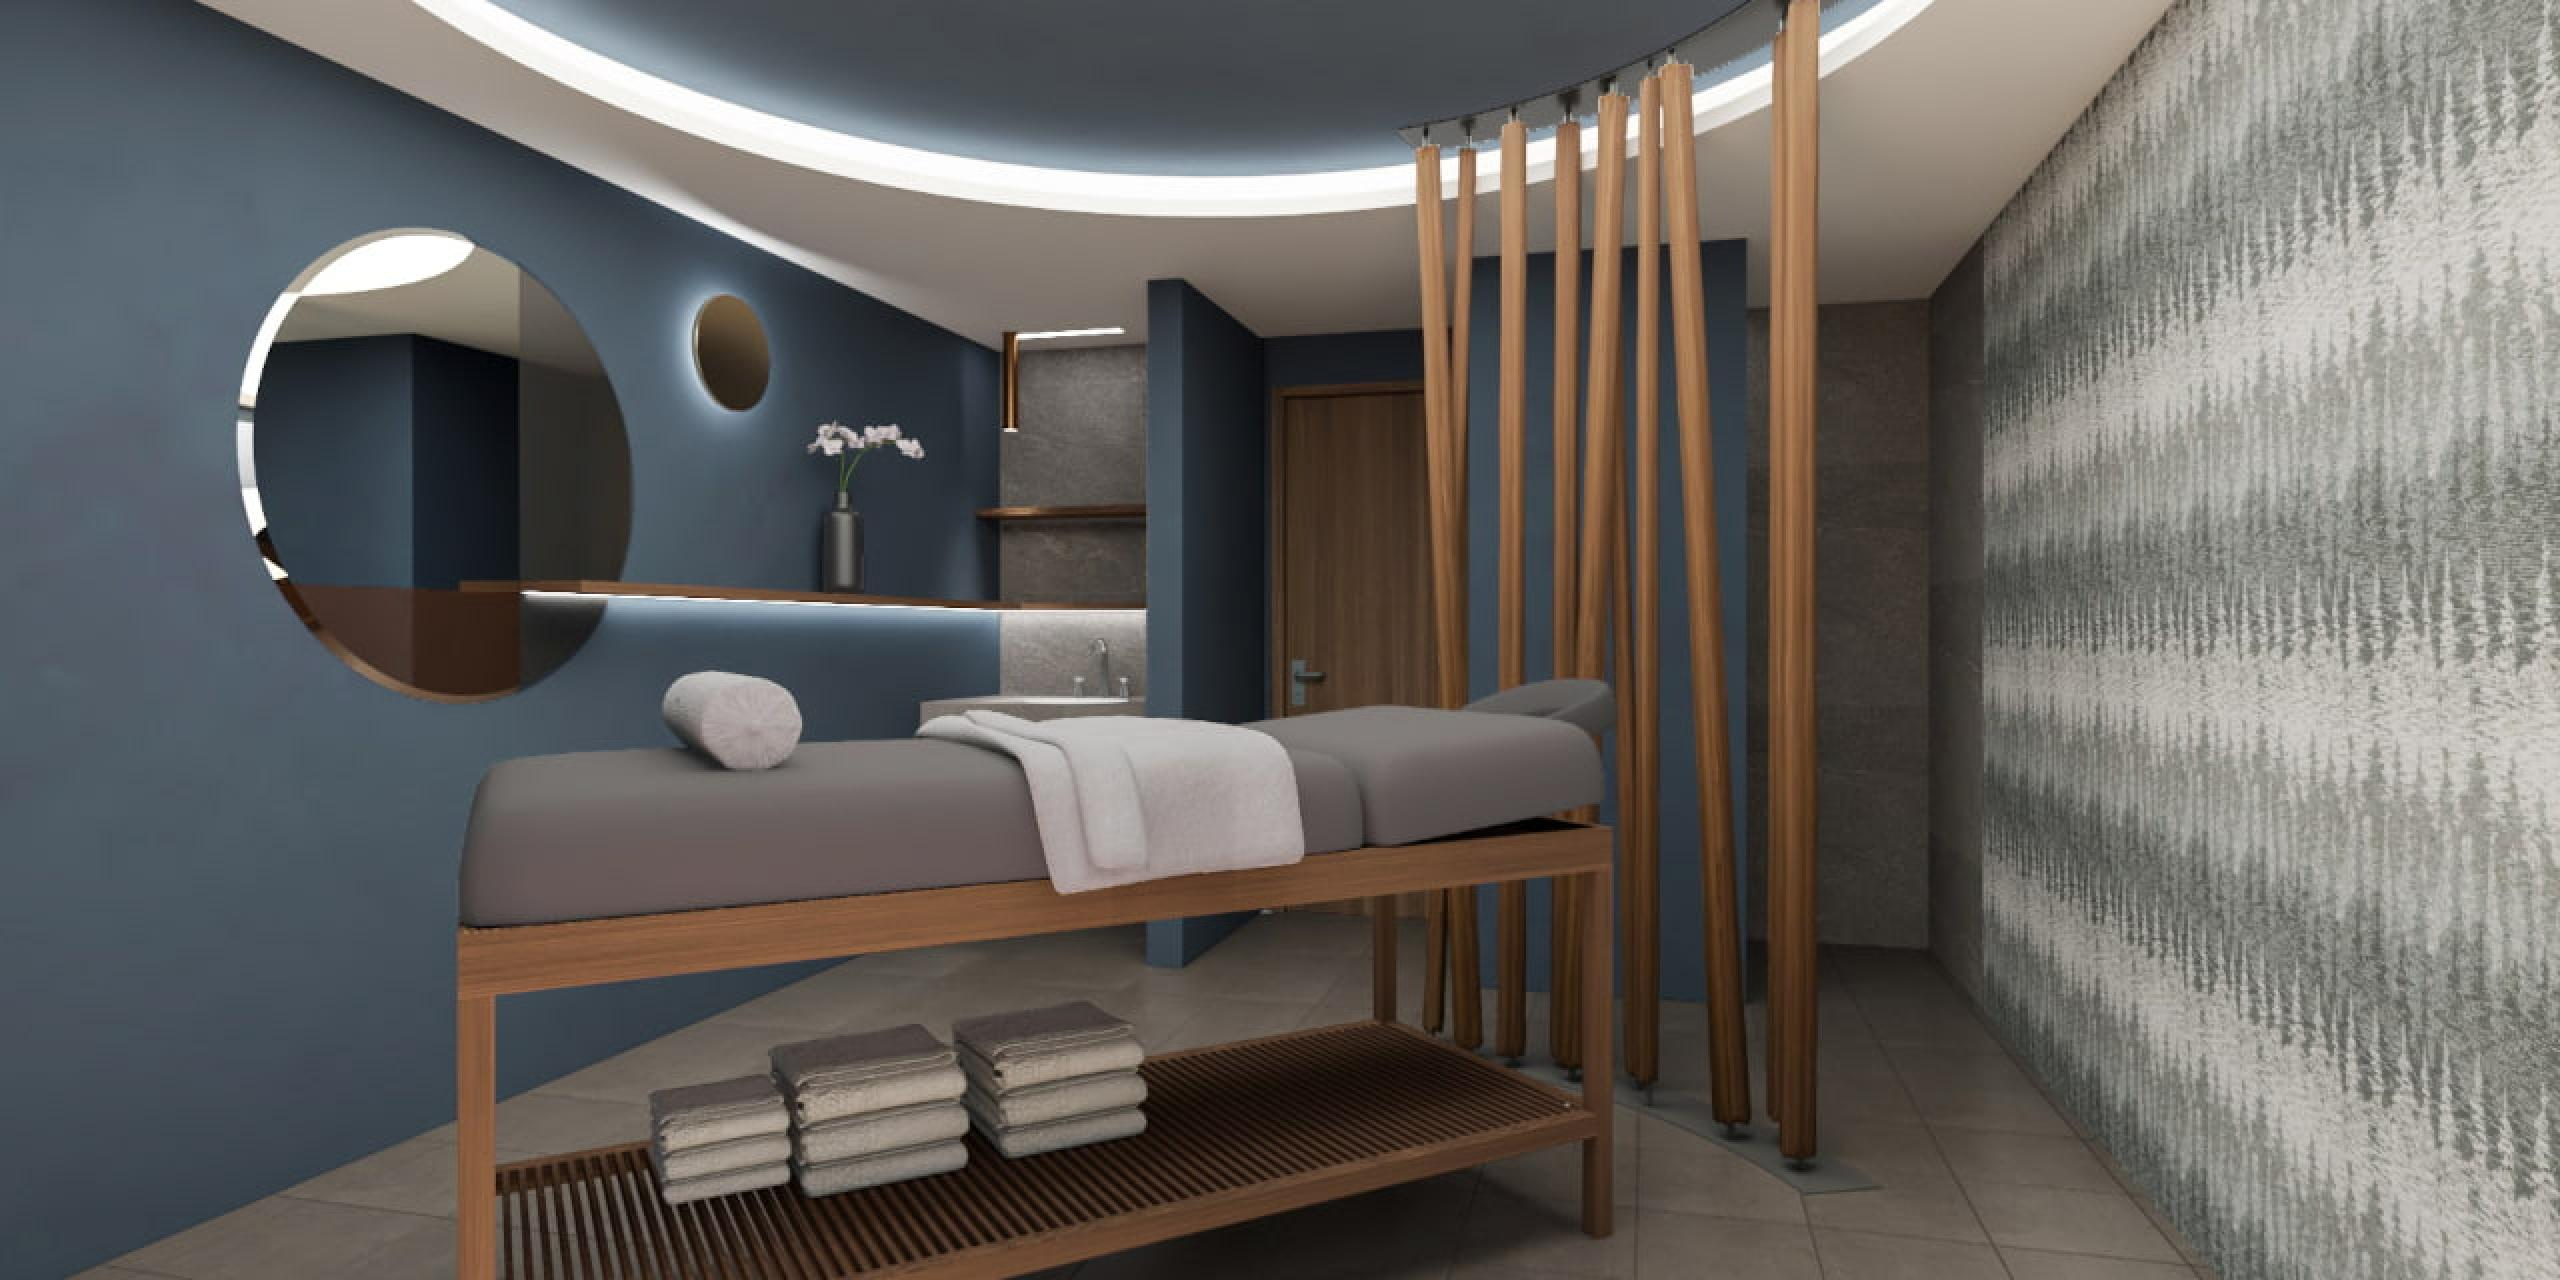 Gallery Spa Render 10 1